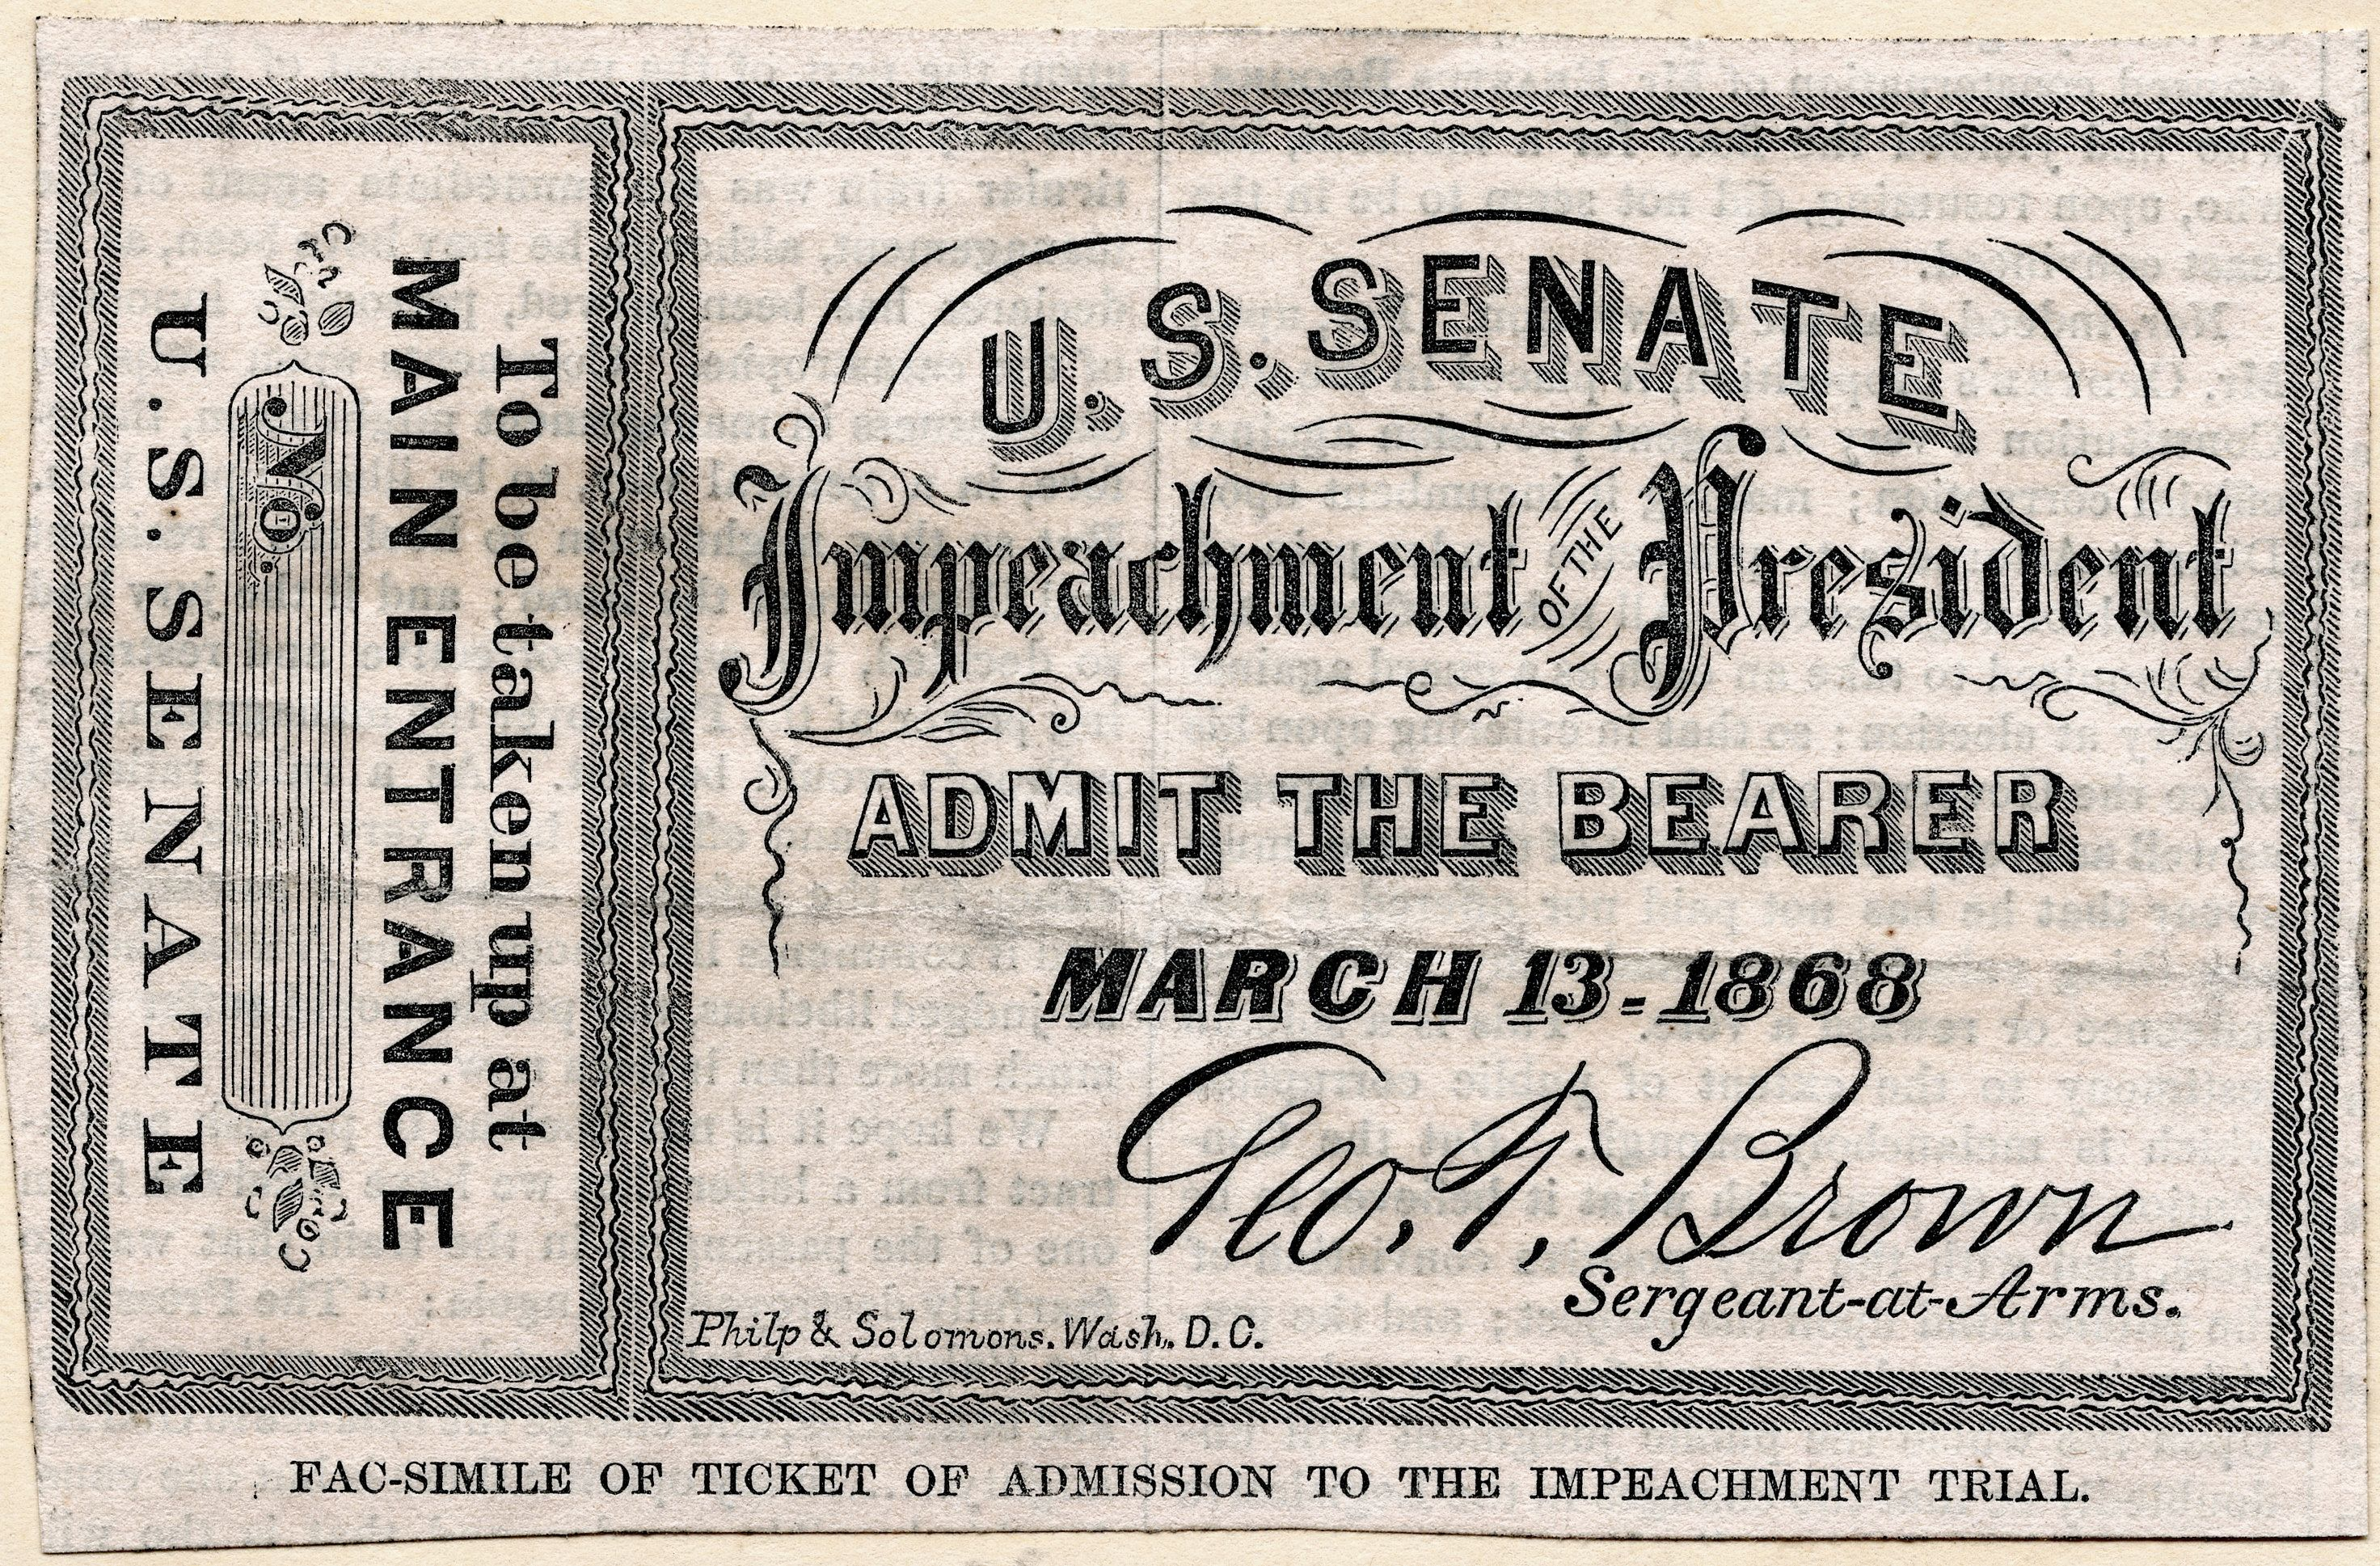 Facsimile of a ticket of admission to the Impeachment Trial of President Andrew Johnson in the United States Senate on March